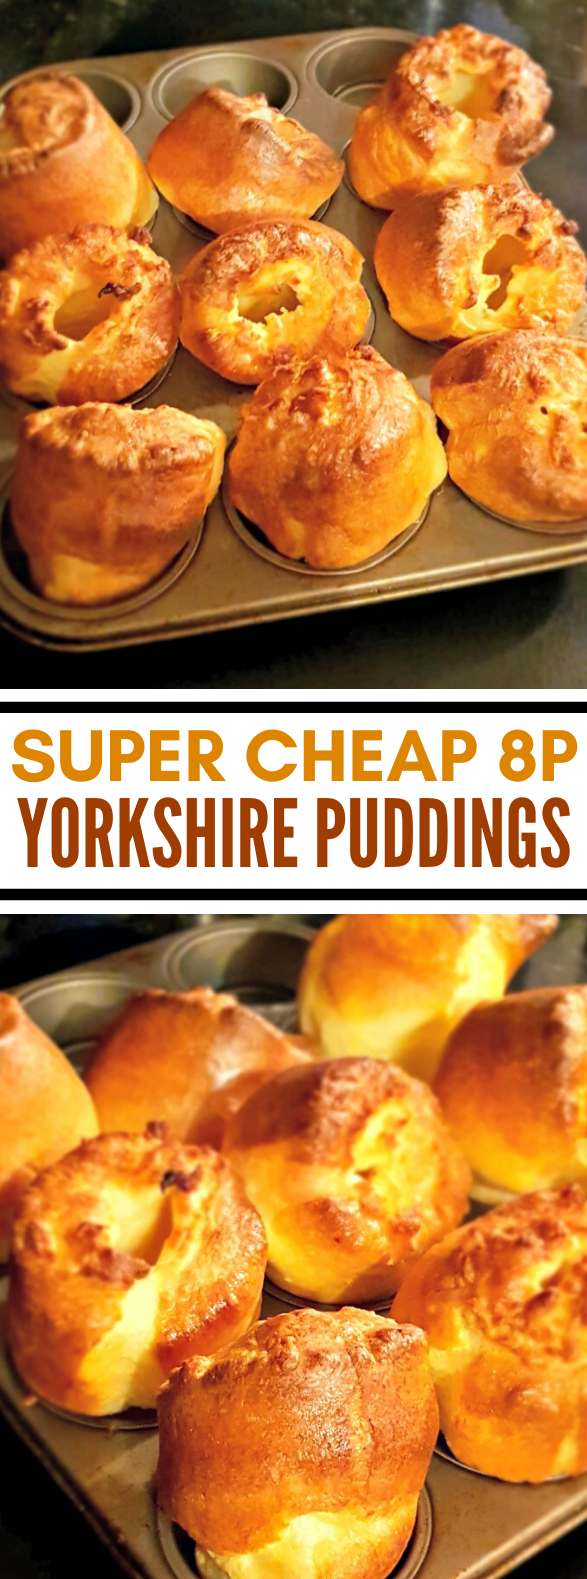 SUPER CHEAP 8P YORKSHIRE PUDDINGS #dinner #meals #appetizers #pudding #recipes